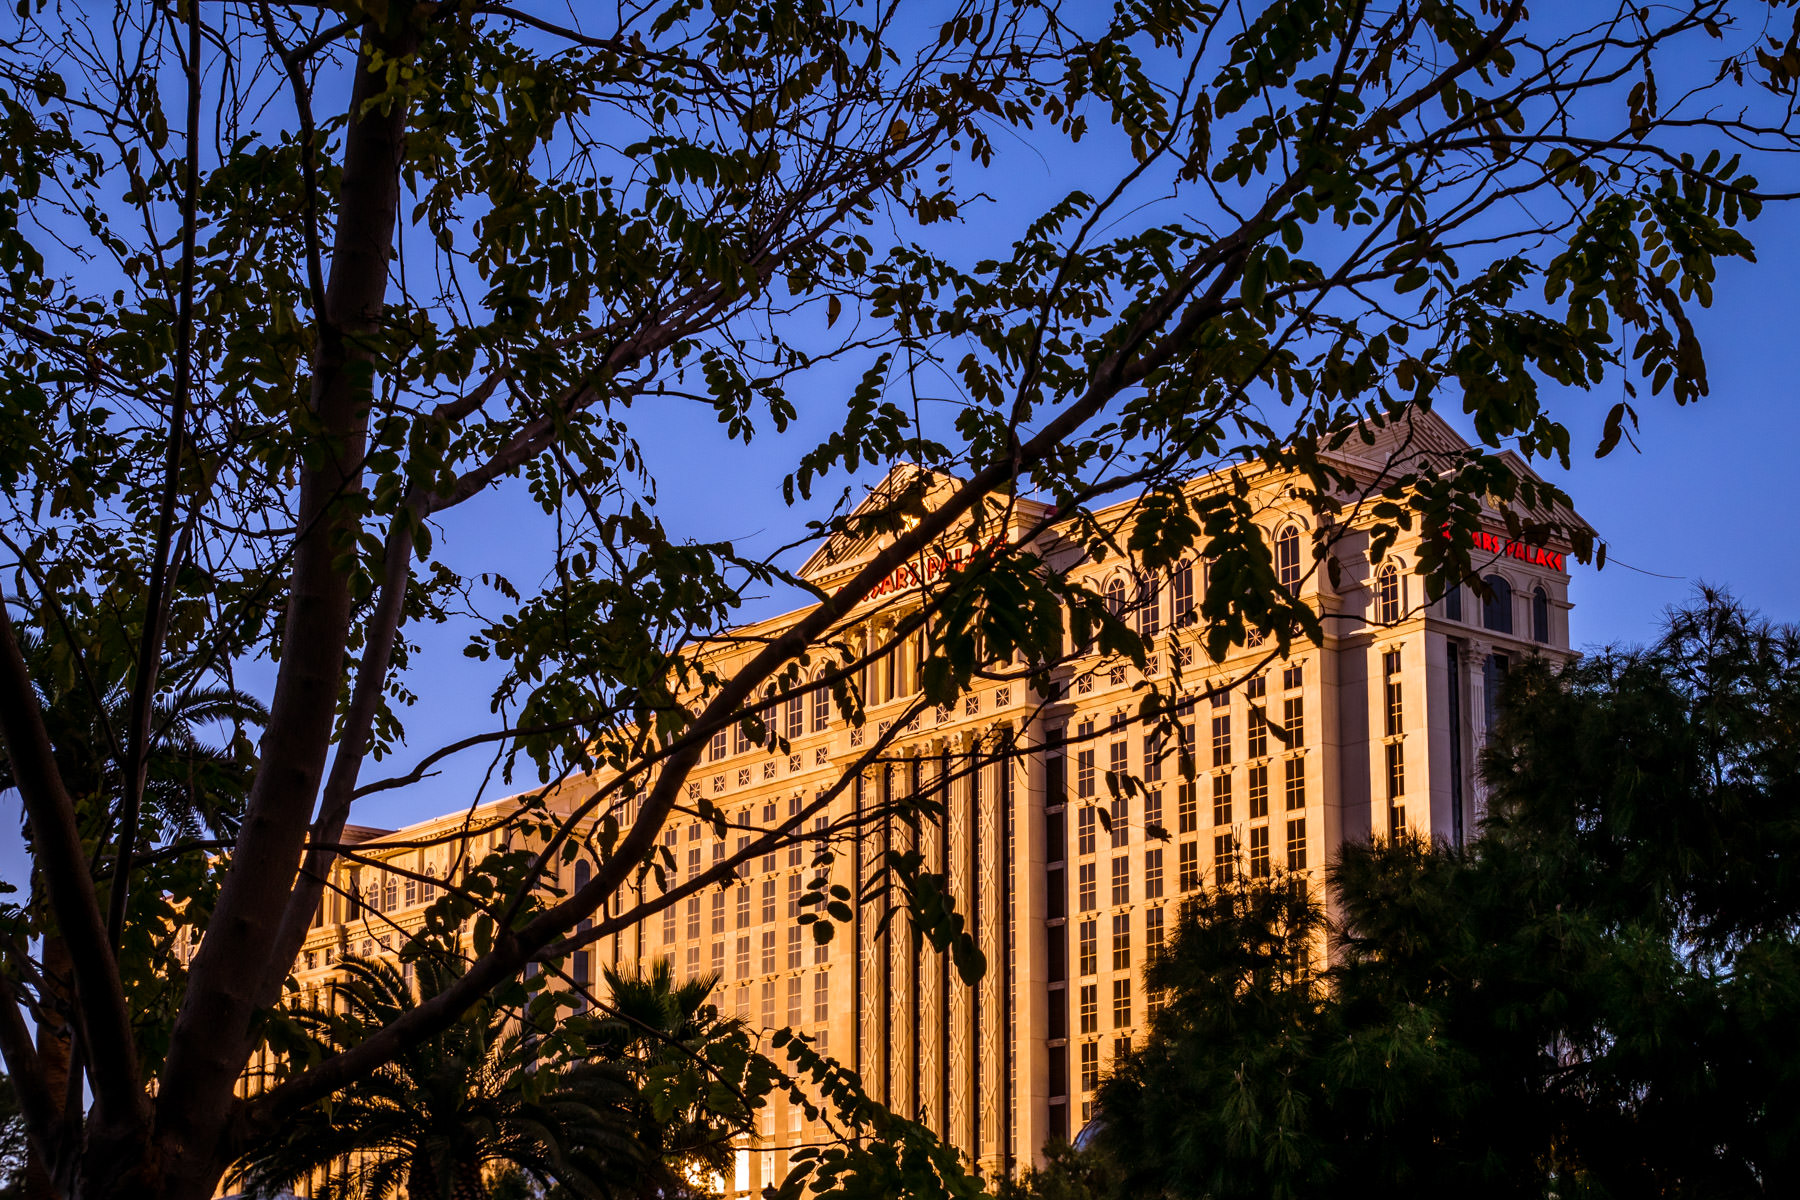 Caesars Palace's Augustus Tower seems to hide behind trees as the sun starts to set on the Las Vegas Strip.